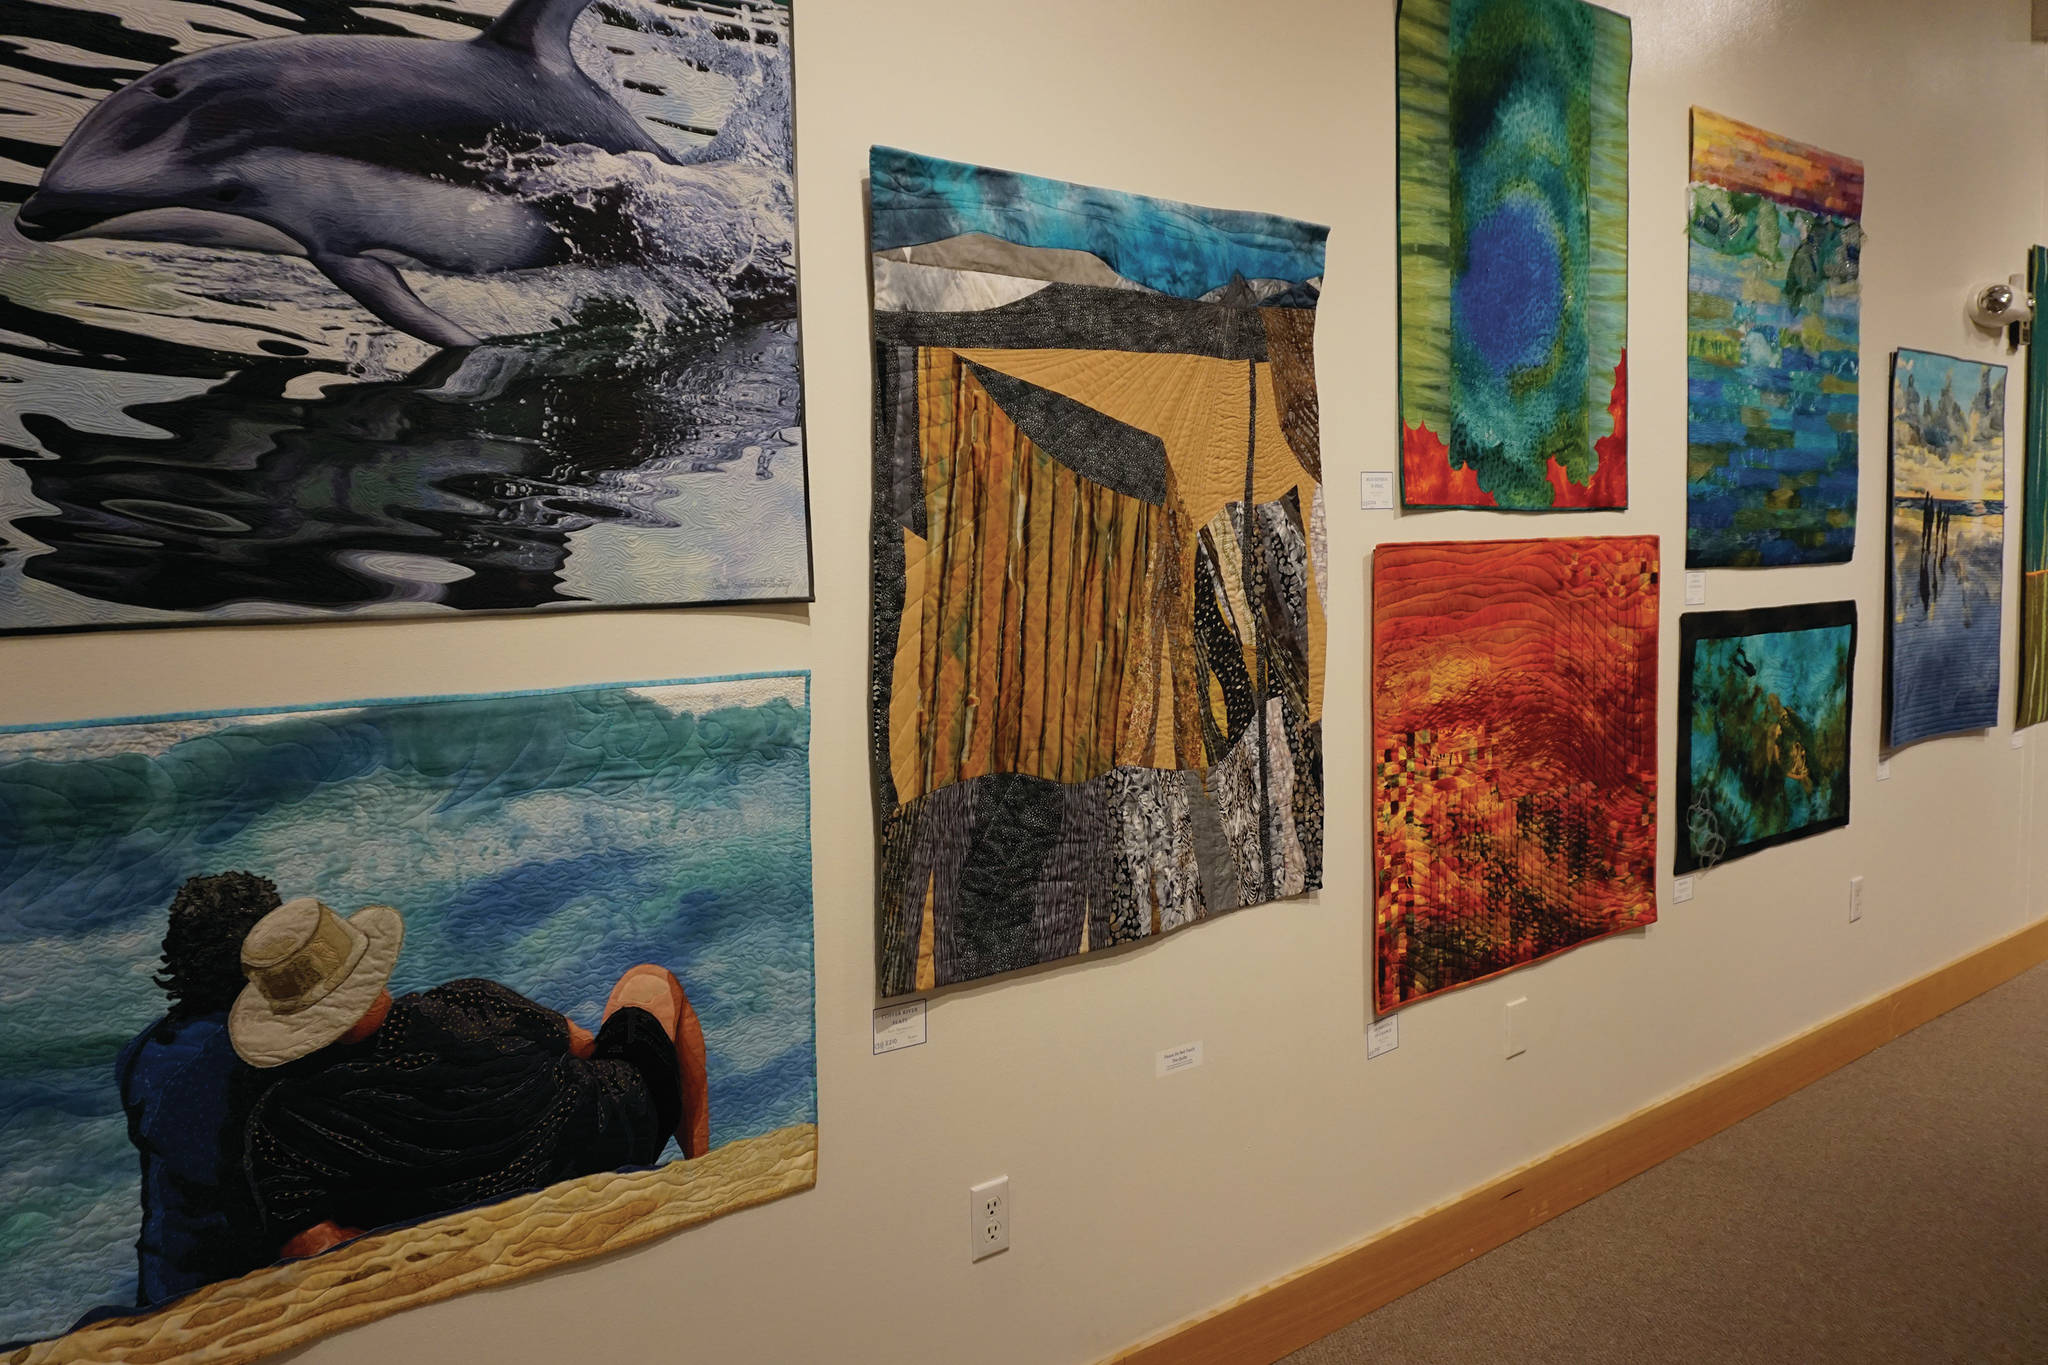 """Some of the 45 art quilts featured in """"Shifting Tides: Cloth in Convergence,"""" on exhibit from Oct. 9 to Nov. 28, 2020, at the Pratt Museum in Homer, Alaska. (Photo by Michael Armstrong/Homer News)"""